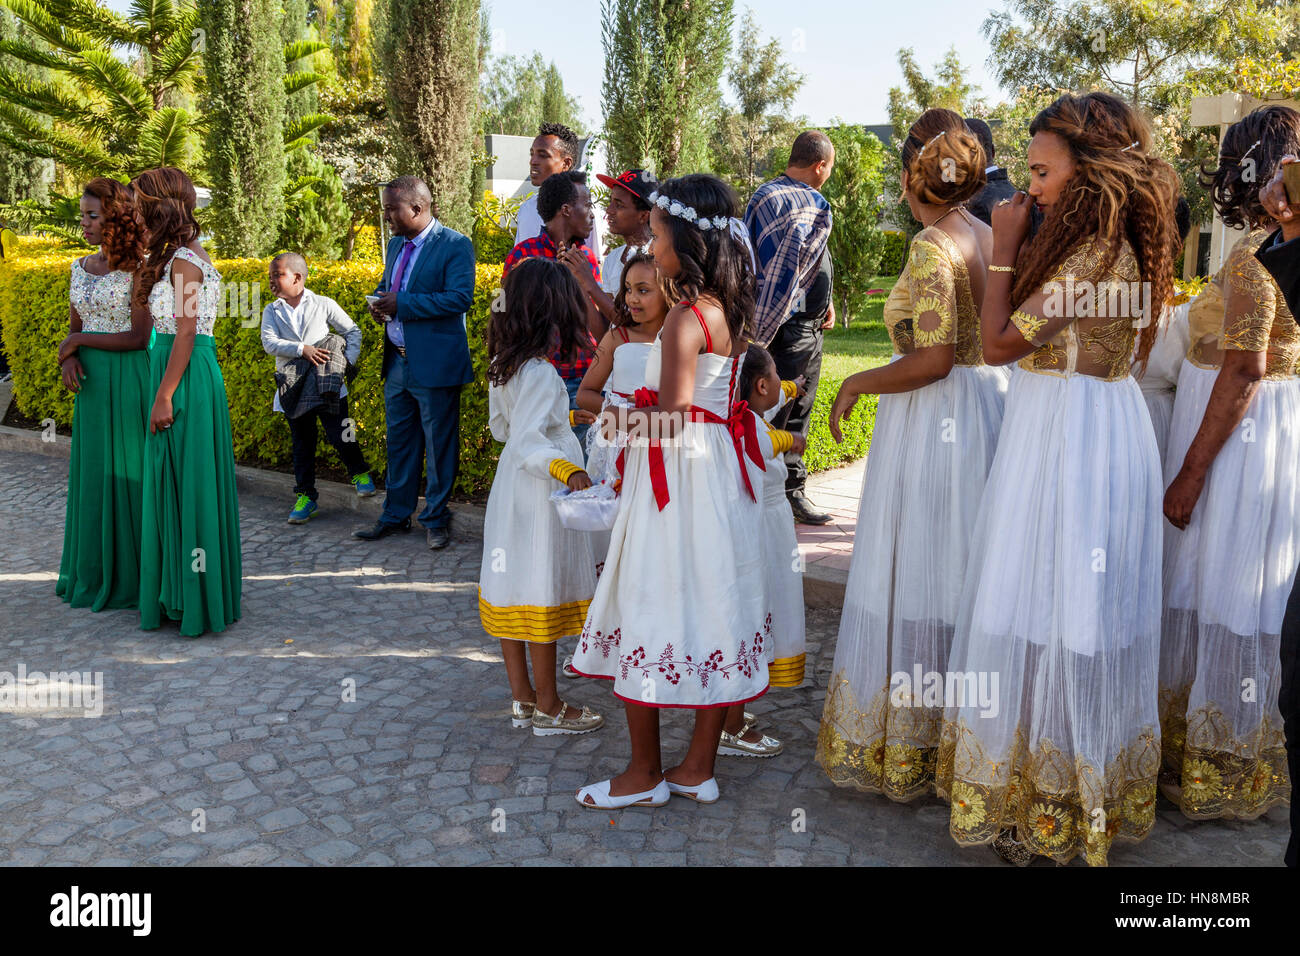 The Wedding Party, Bridesmaids Wait For The Arrival Of The Bride, Lake Ziway, Ziway, Ethiopia Stock Photo